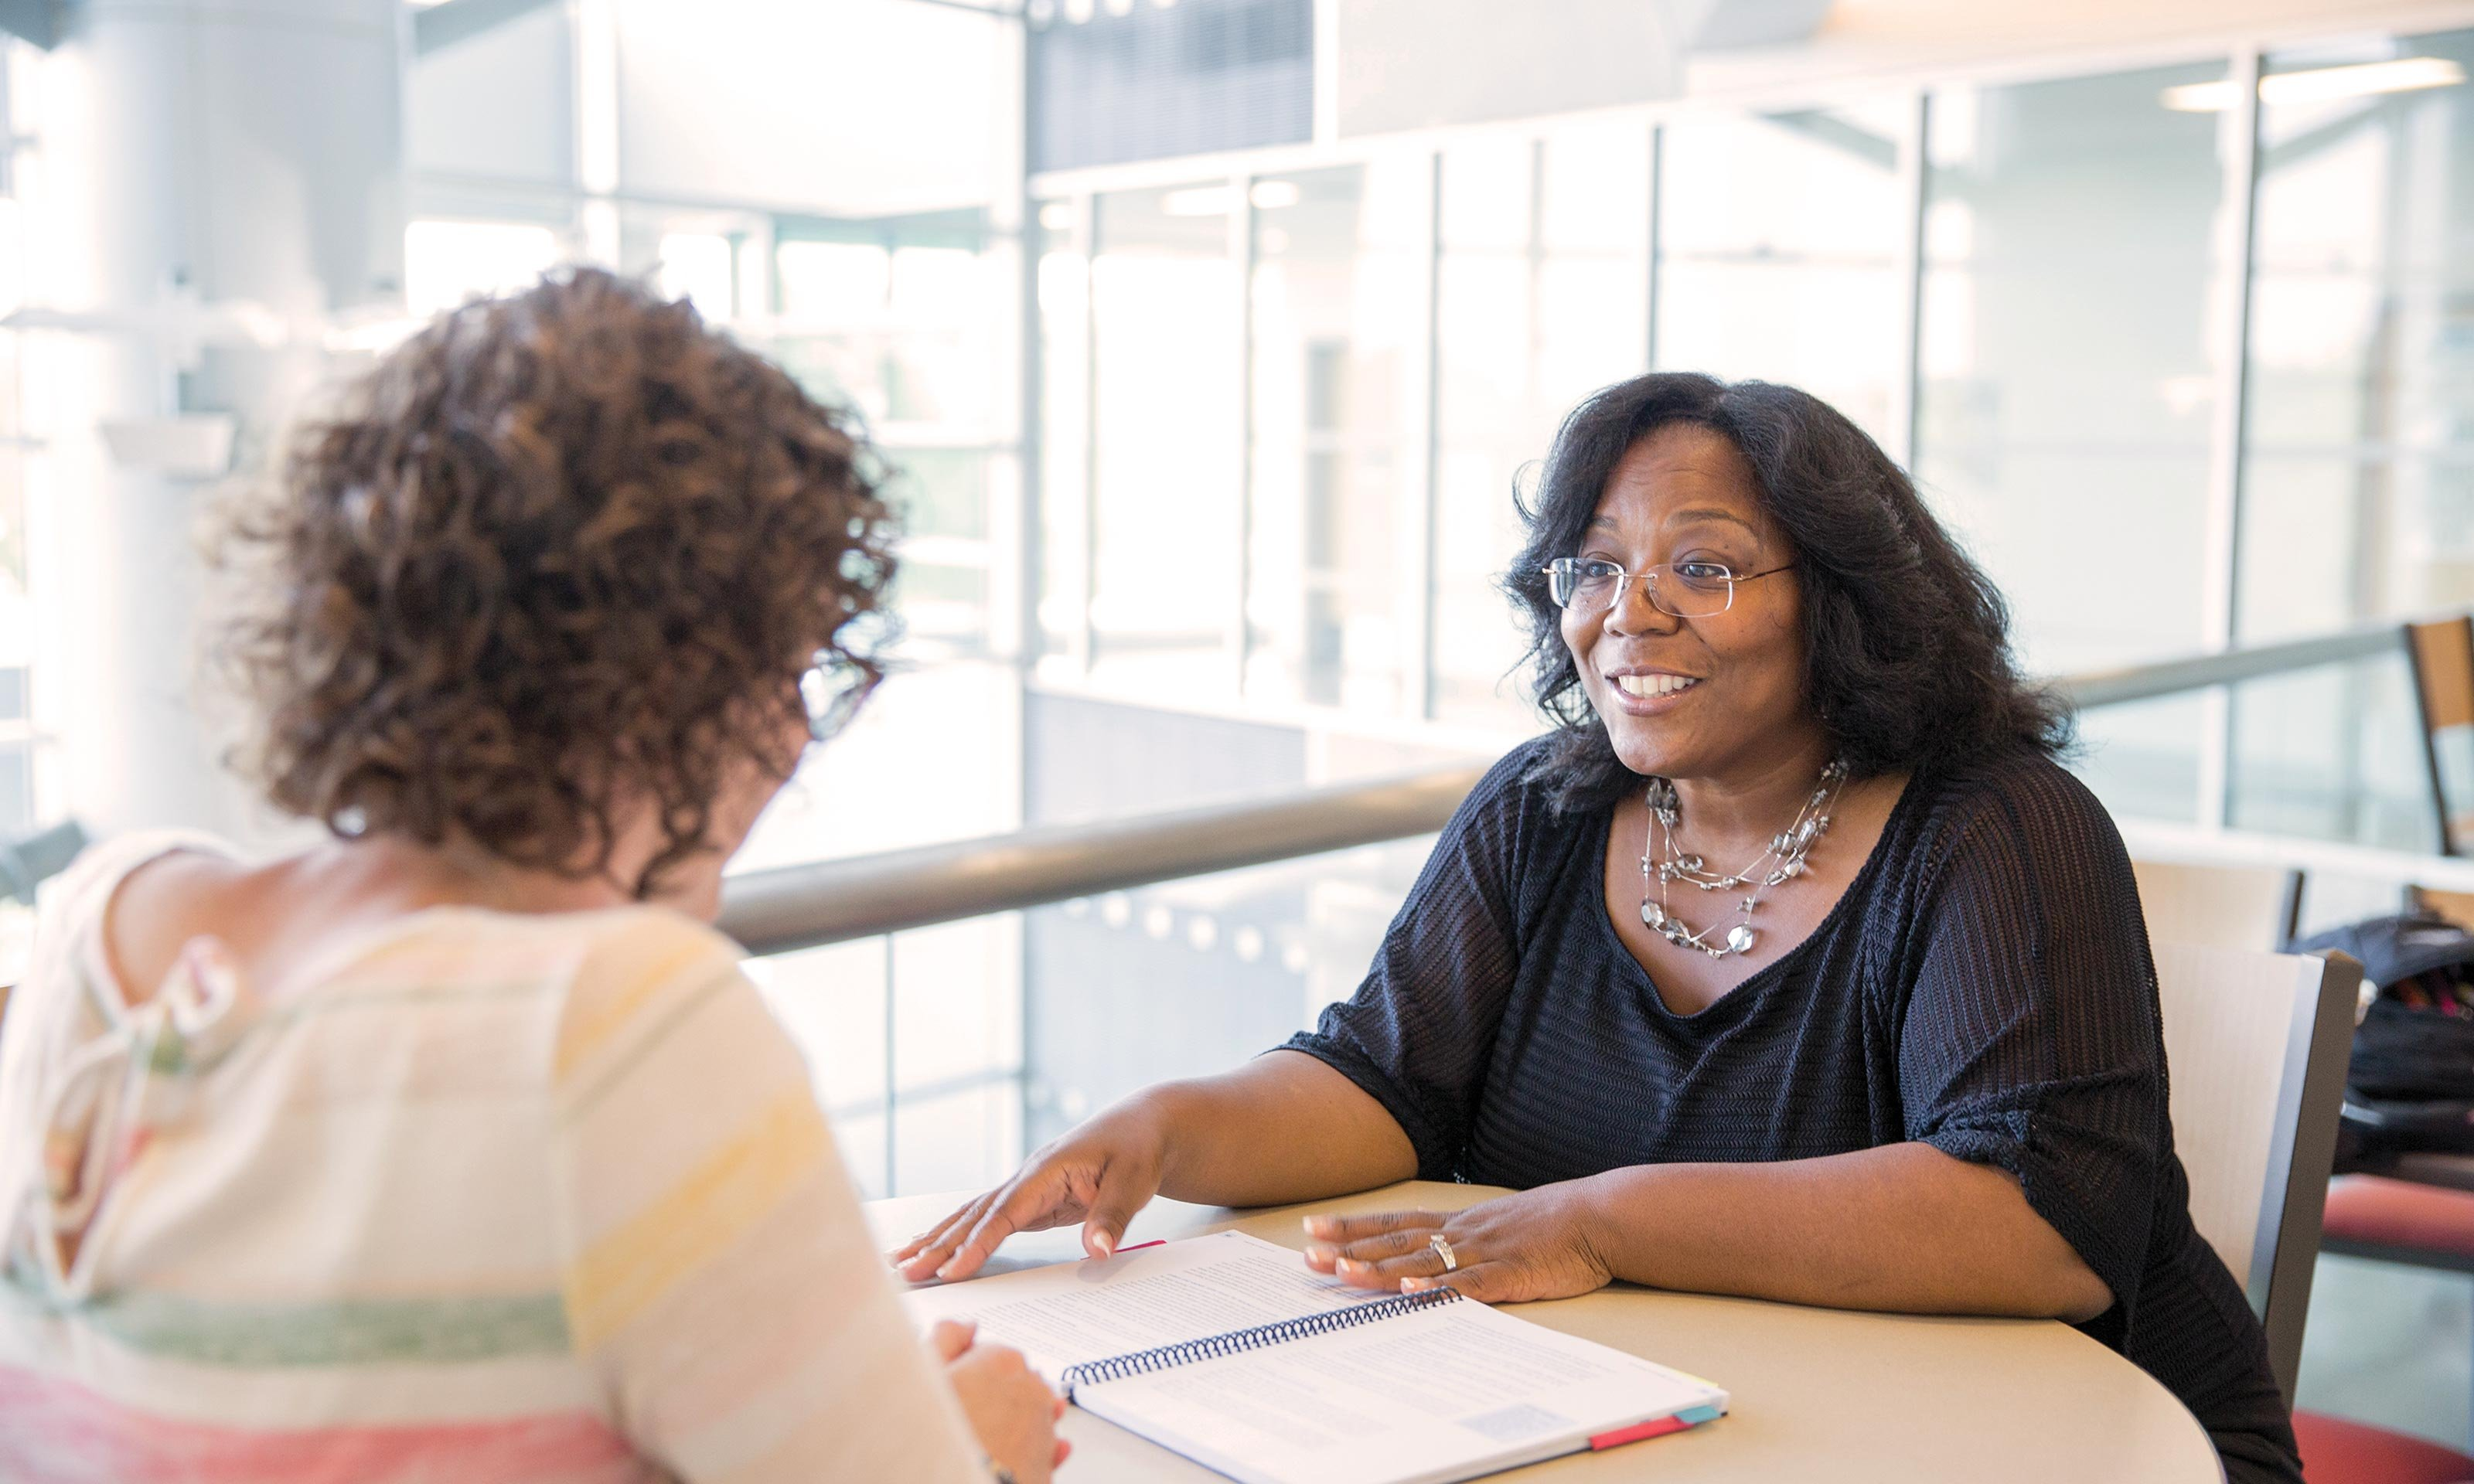 Educator Richelle Barkley talks to a fellow educator inside the School of Education and Human Services building